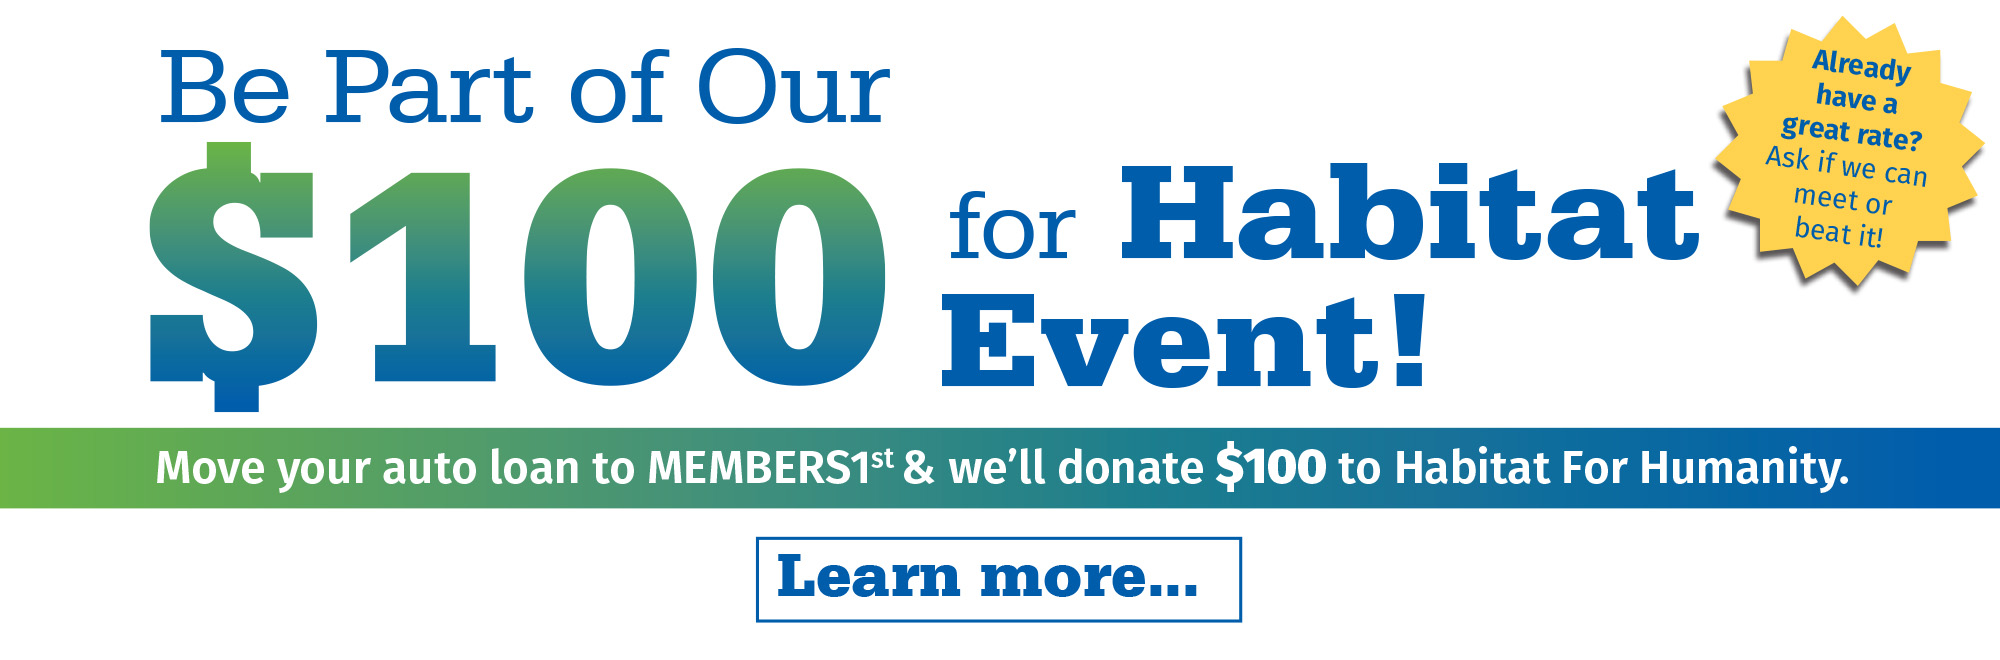 Be part of our $100 for Habitat Event! Learn More!